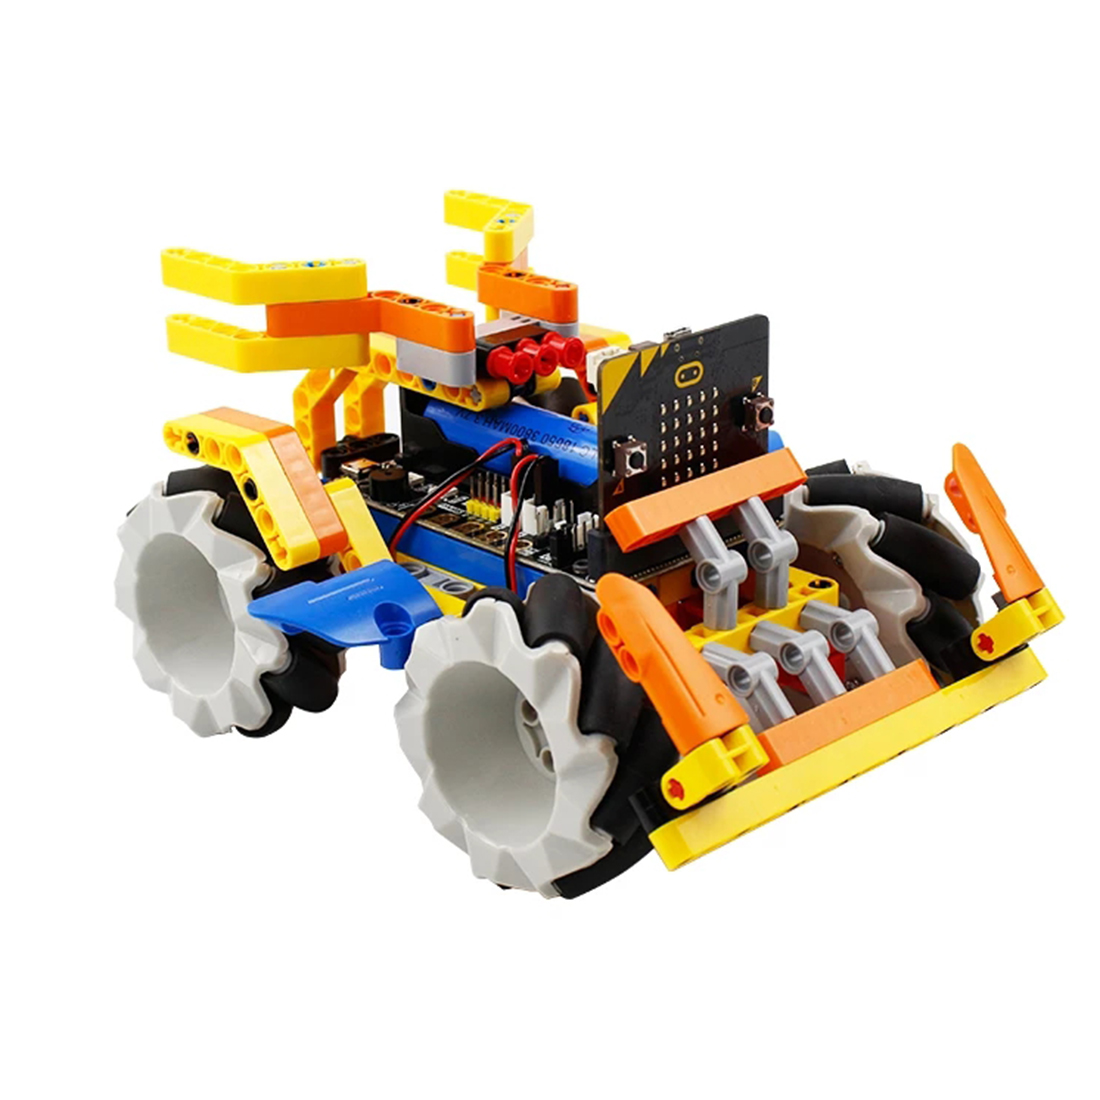 New Program Intelligent Robot Building Block Kit Mecanum Wheel Robot Car For Micro: Bit  Programmable Toys For Kids Adults Gift